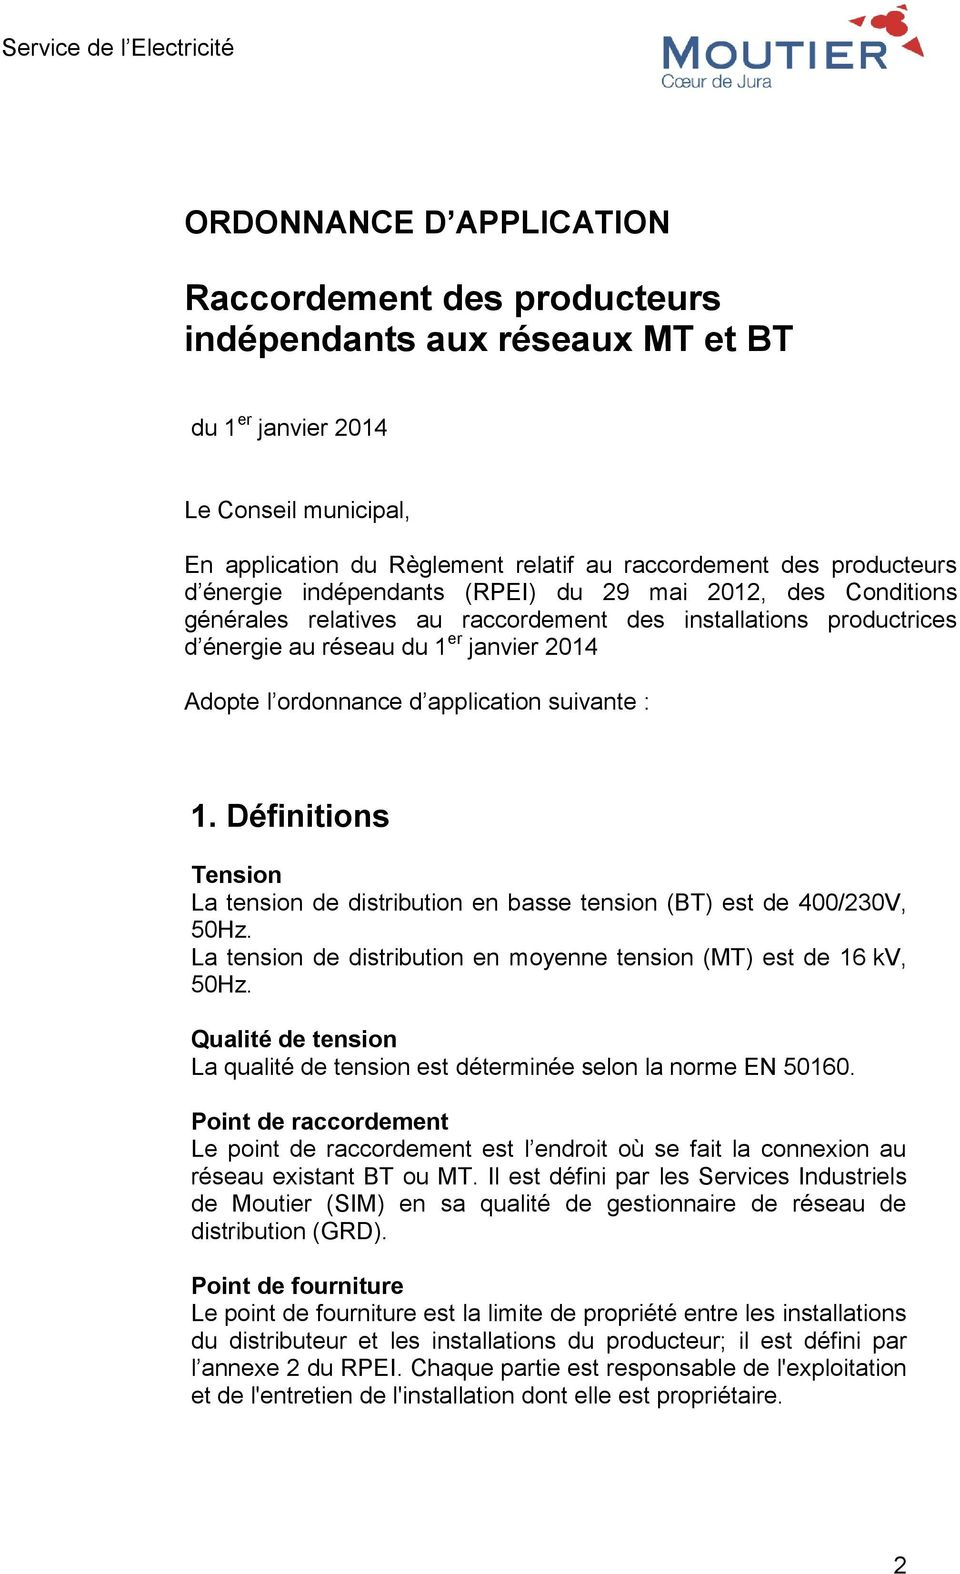 application suivante : 1. Définitions Tension La tension de distribution en basse tension (BT) est de 400/230V, 50Hz. La tension de distribution en moyenne tension (MT) est de 16 kv, 50Hz.